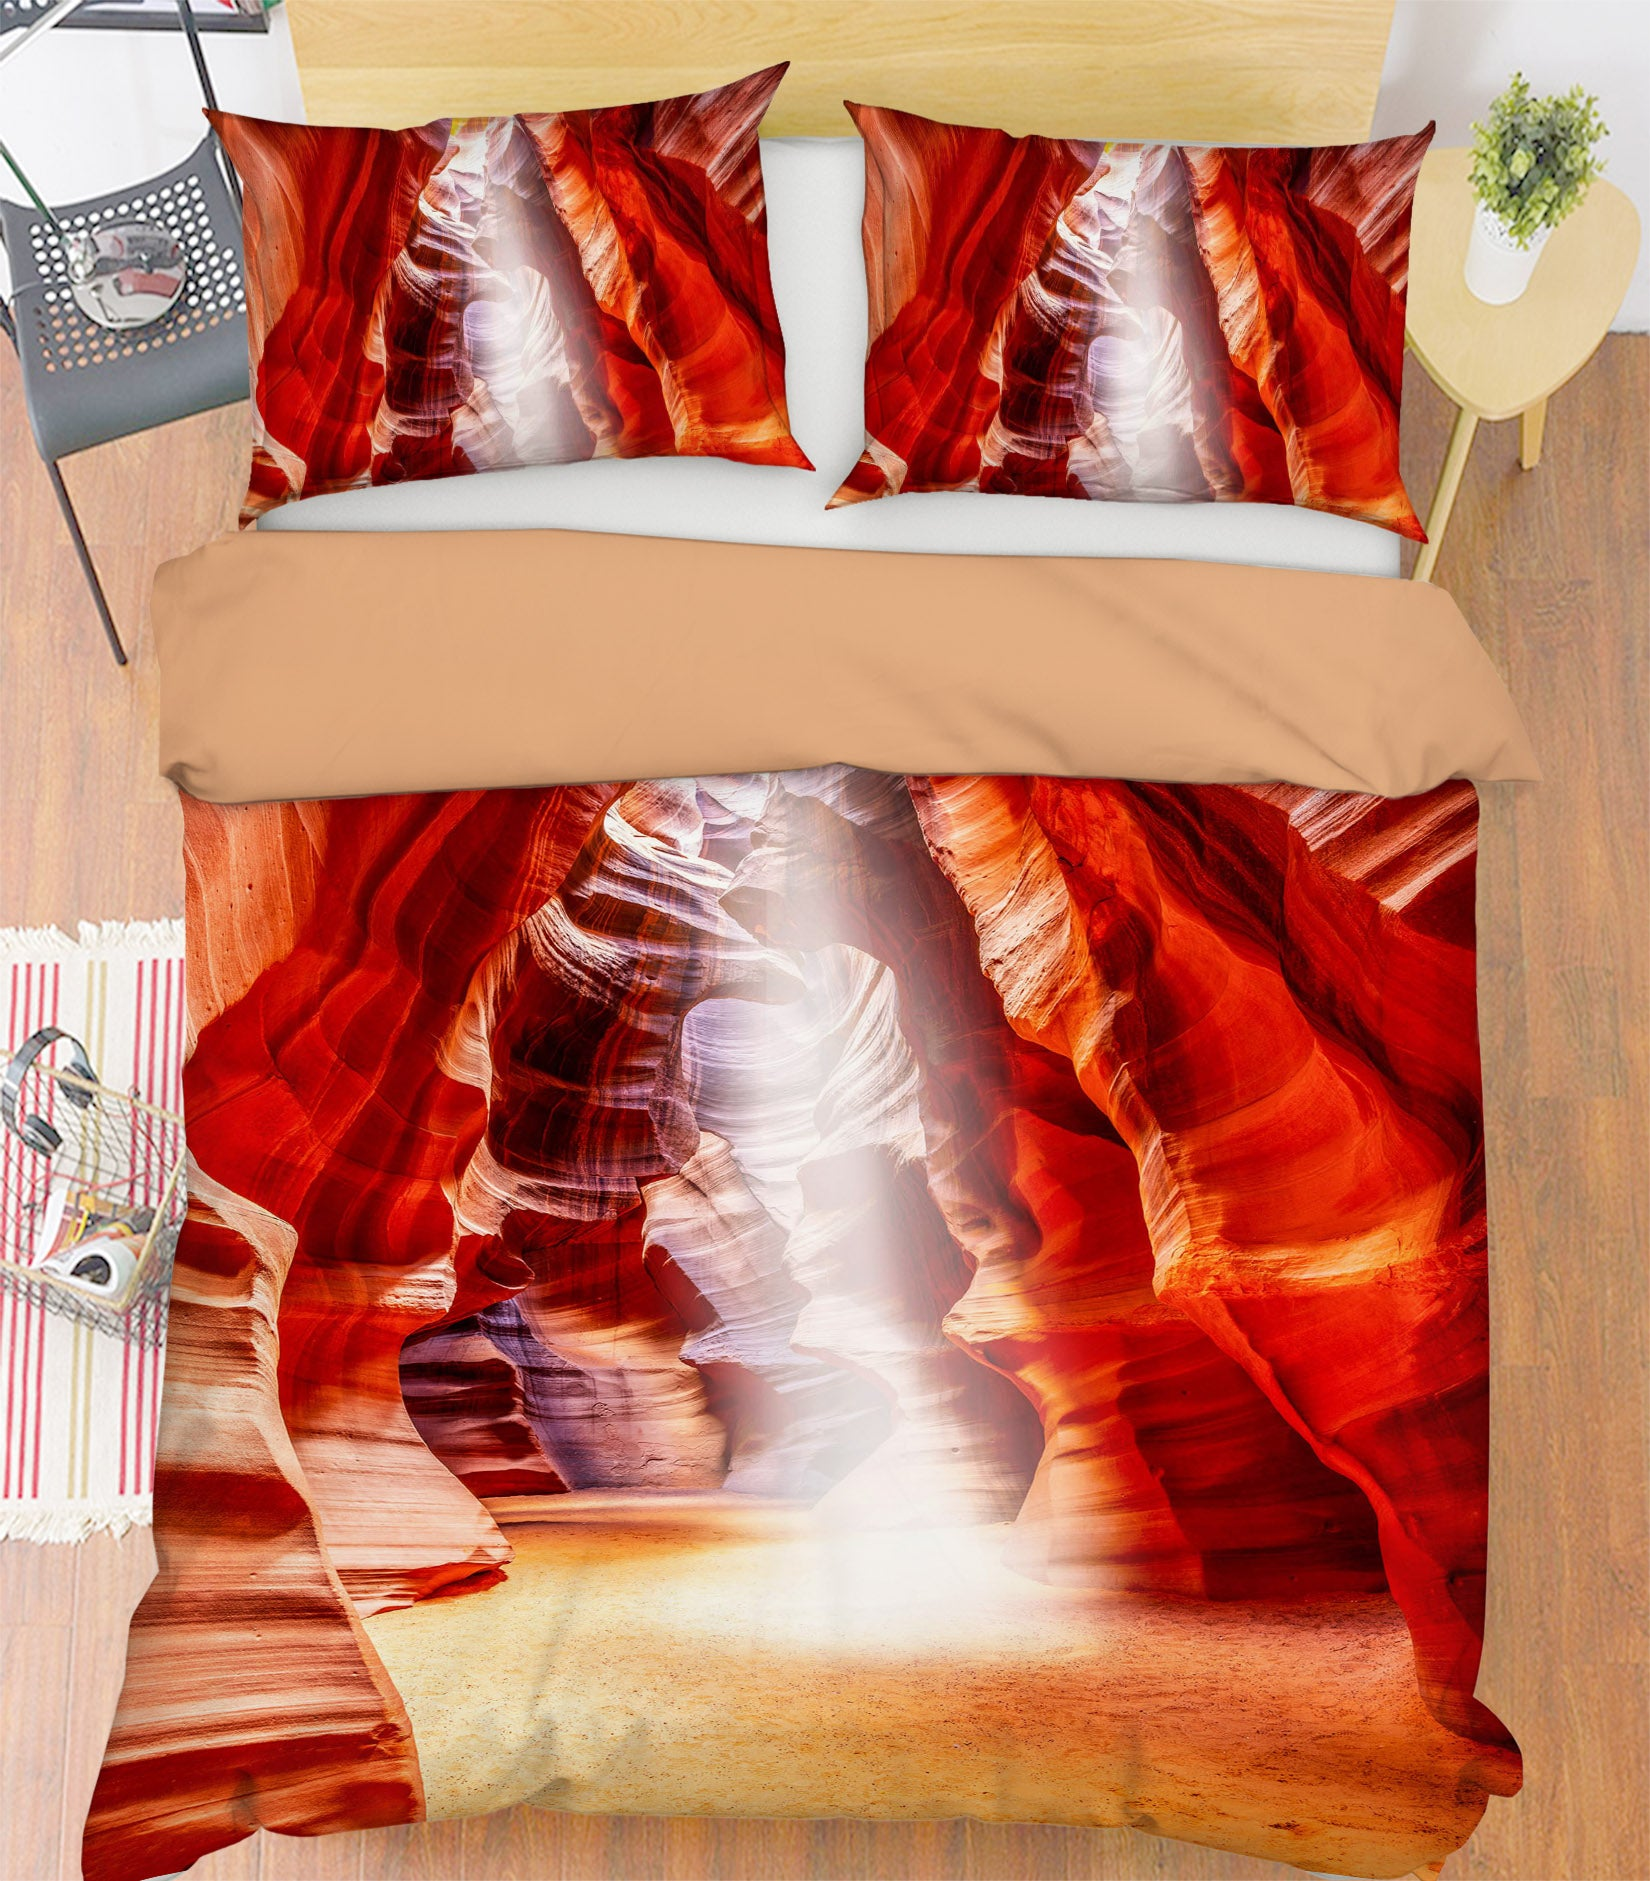 3D The Ghost 156 Marco Carmassi Bedding Bed Pillowcases Quilt